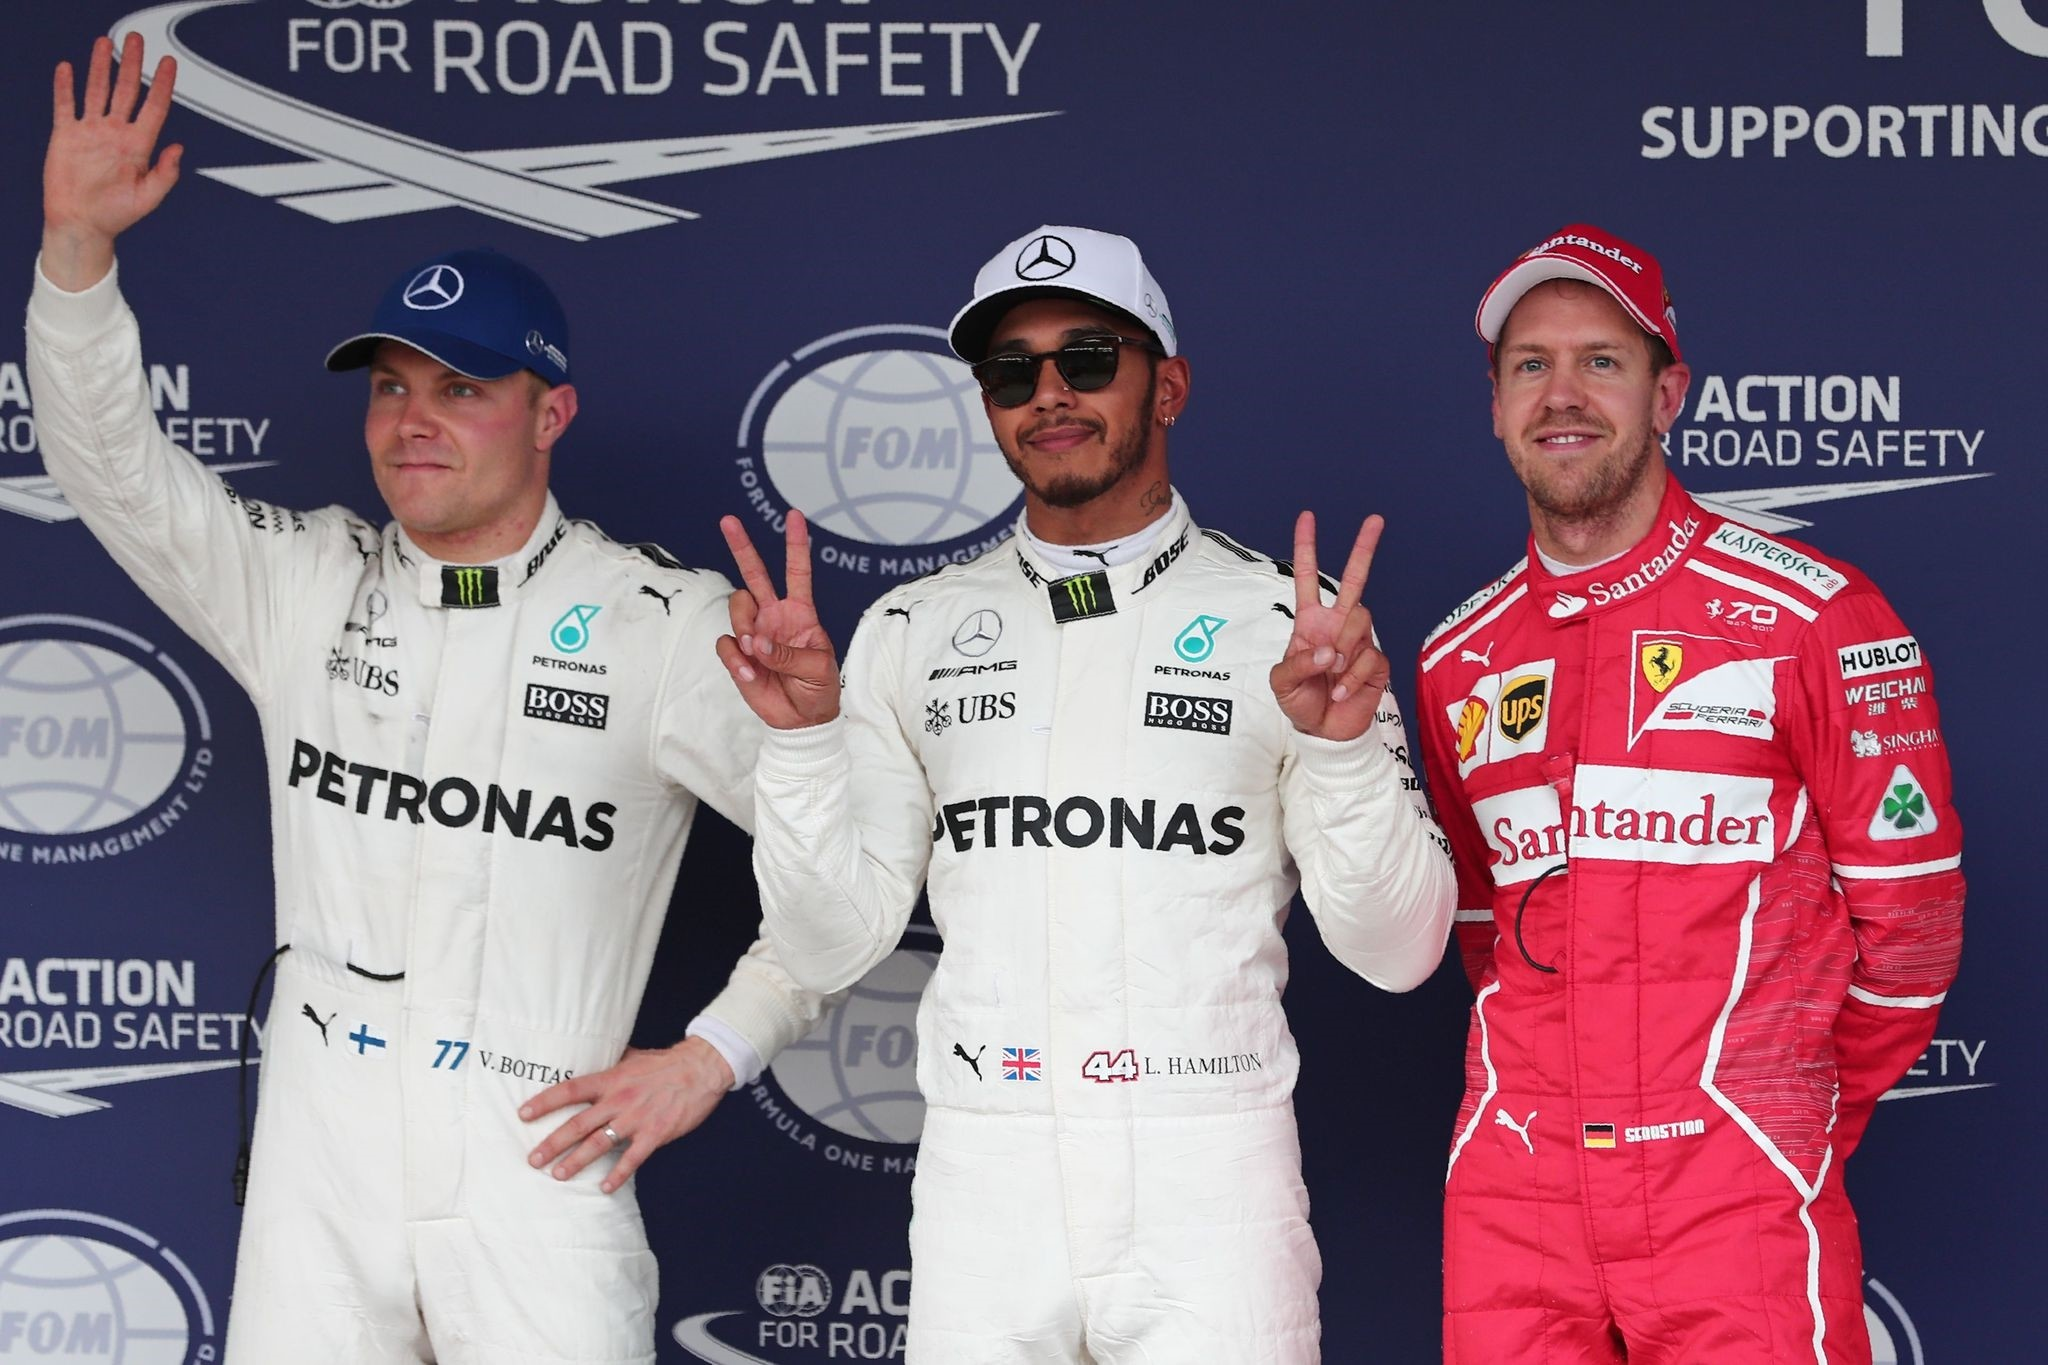 Hamilton, (C) poses with Valtteri Bottas (L) and Sebastian Vettel after getting pole position for the Japanese Formula 1 Grand Prix at Suzuka Circuit, Oct. 7, 2017. (AP Photo)